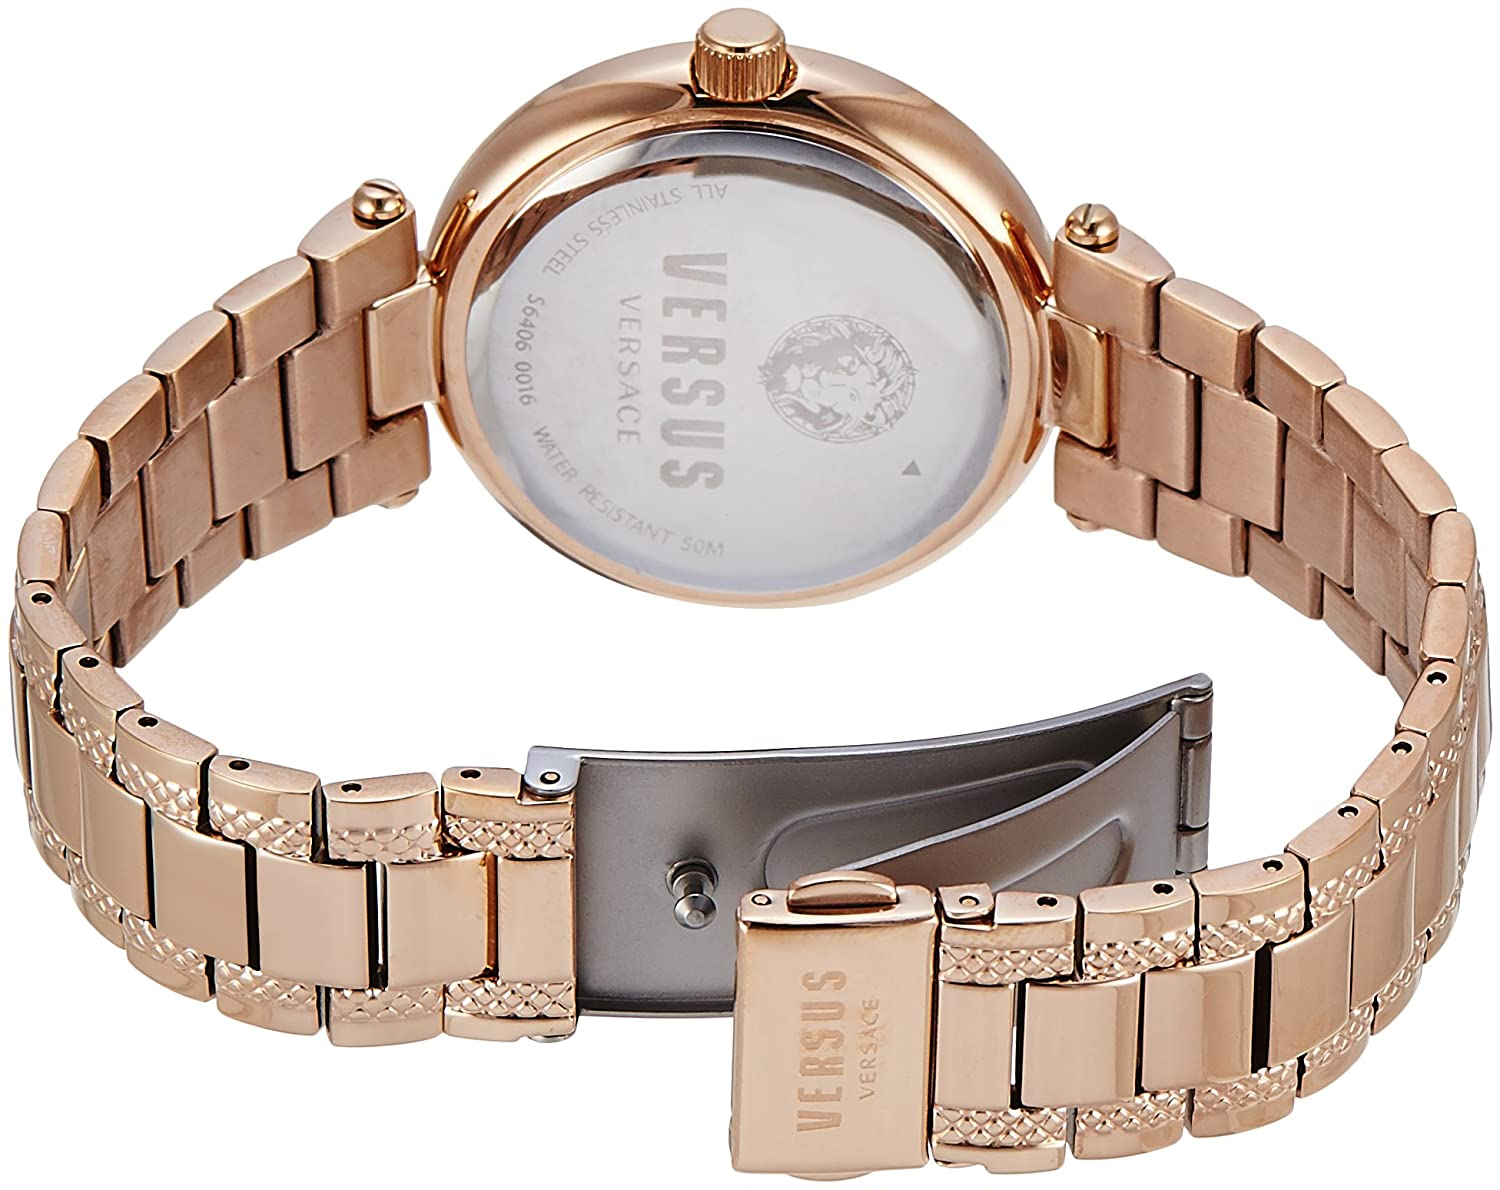 Amazon.com: Versus by Versace Womens BRICK LANE Quartz Stainless Steel Casual Watch, Color:Rose Gold-Toned (Model: S64060016): Versus Versace: Watches